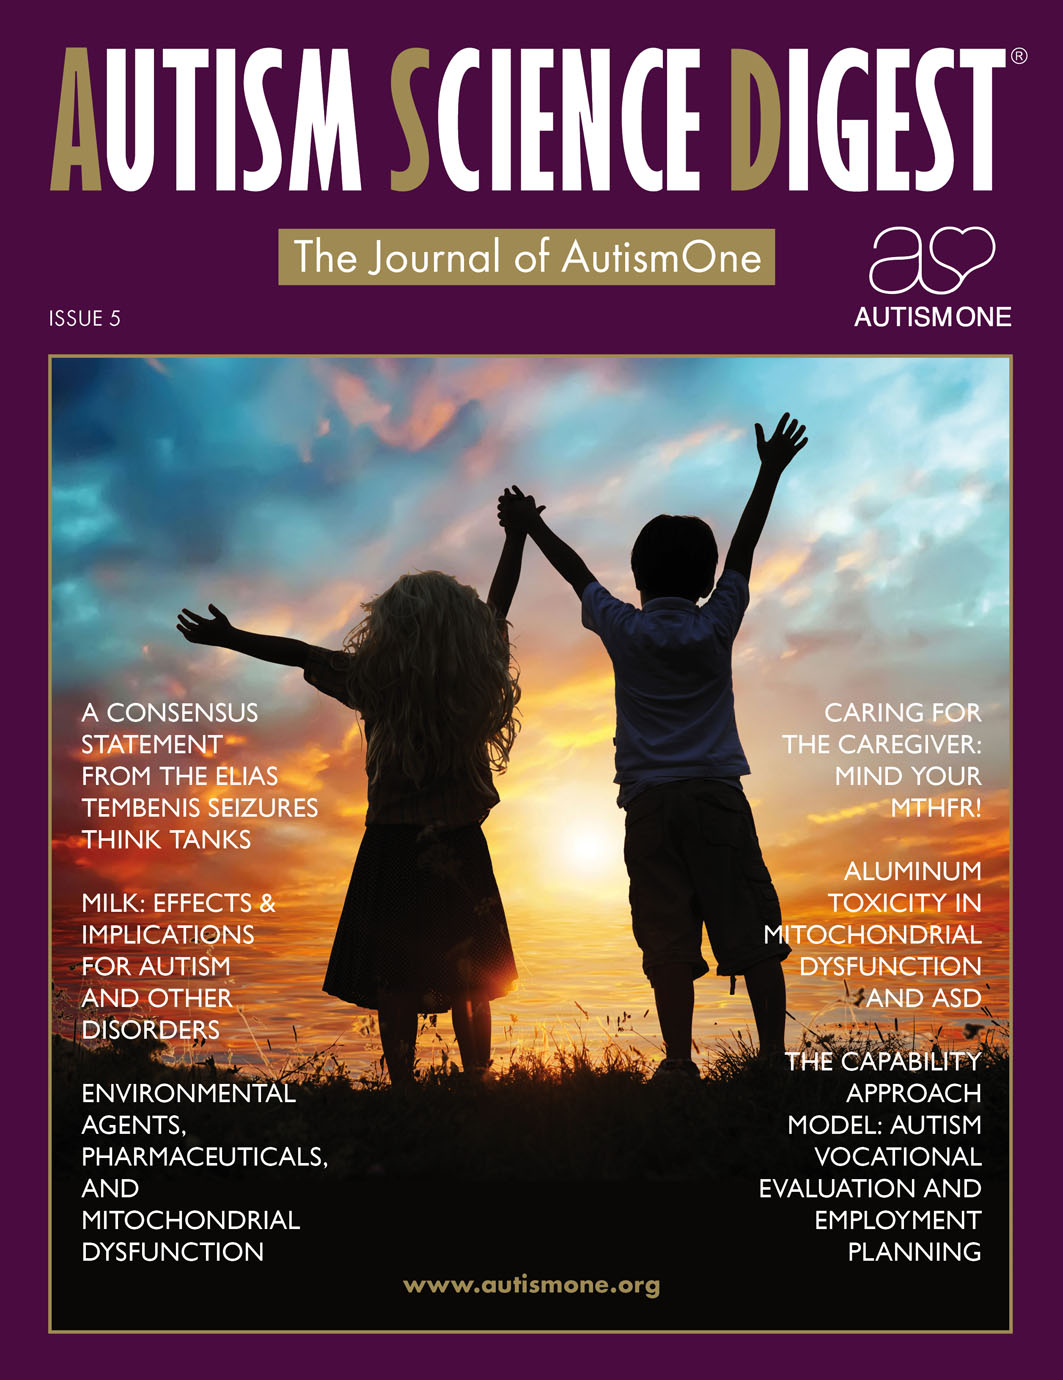 A Year Of Autism Science From Autism >> Autism Science Digest Aluminum Toxicity In Mitochondrial